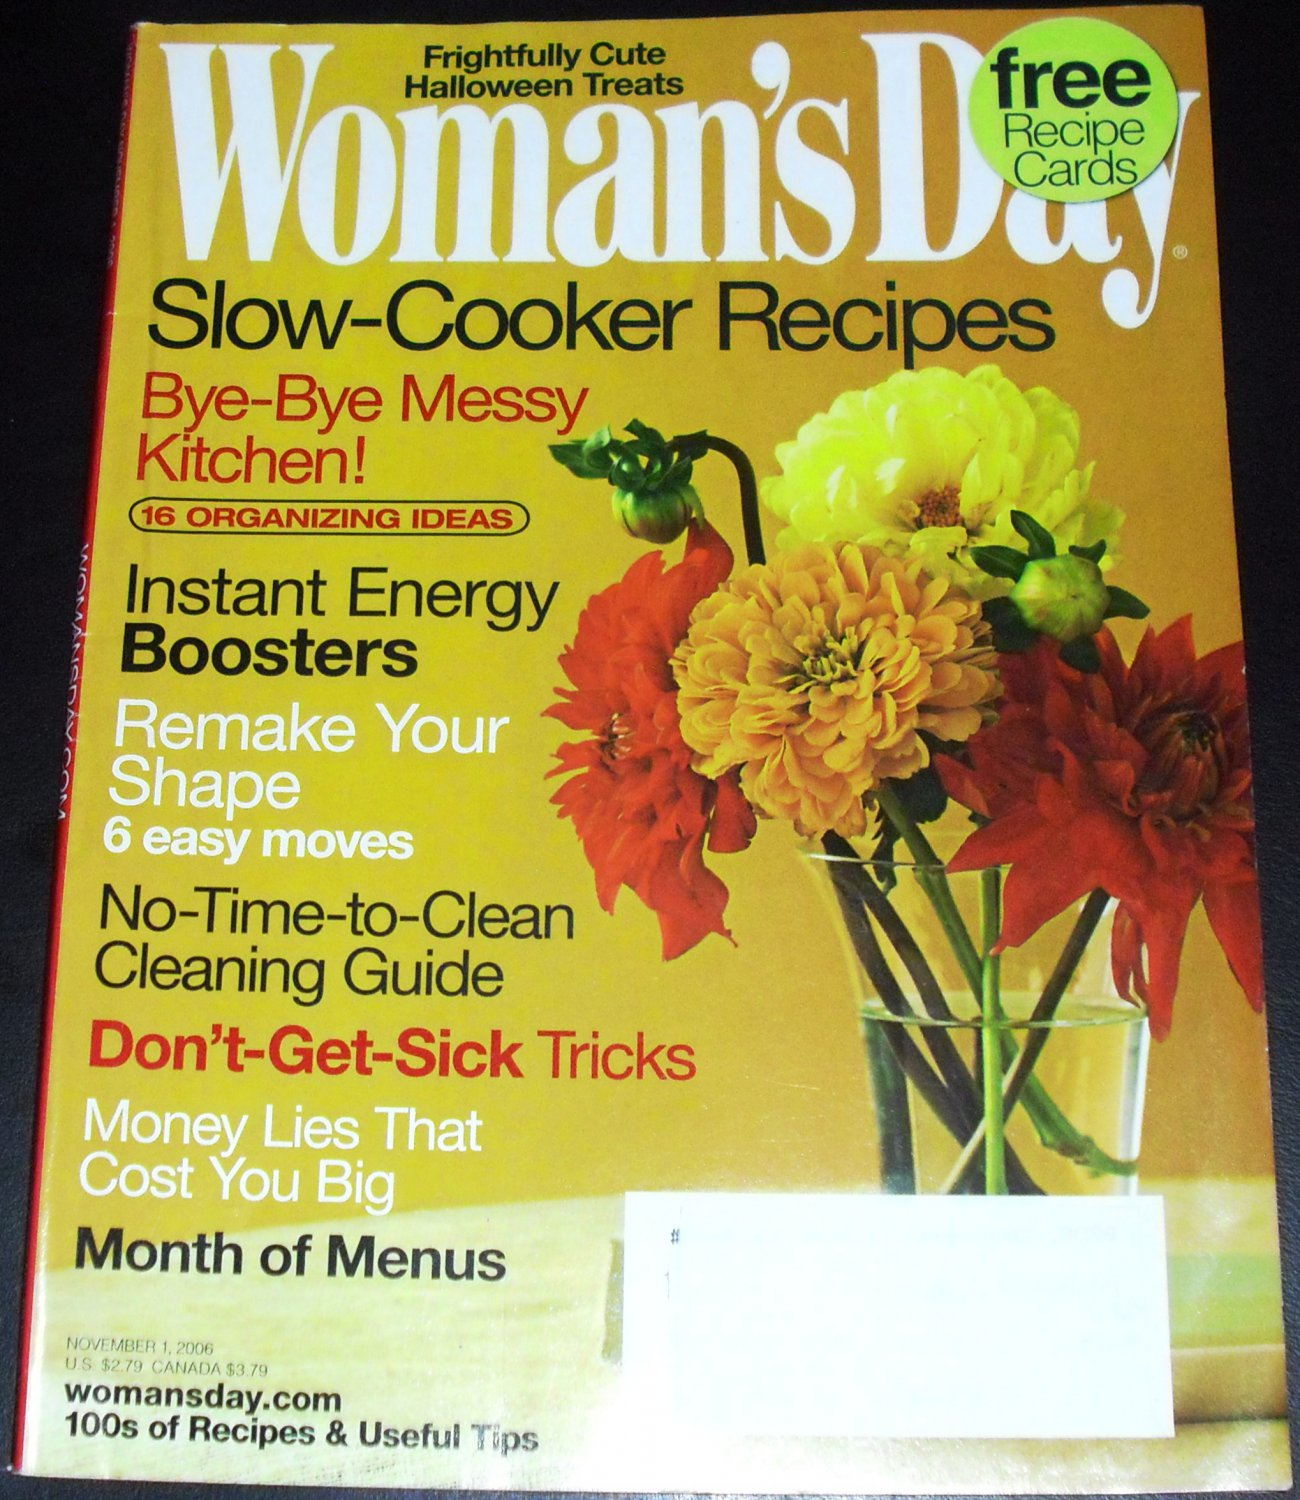 Woman's Day Magazine, November 2006 Special Issue